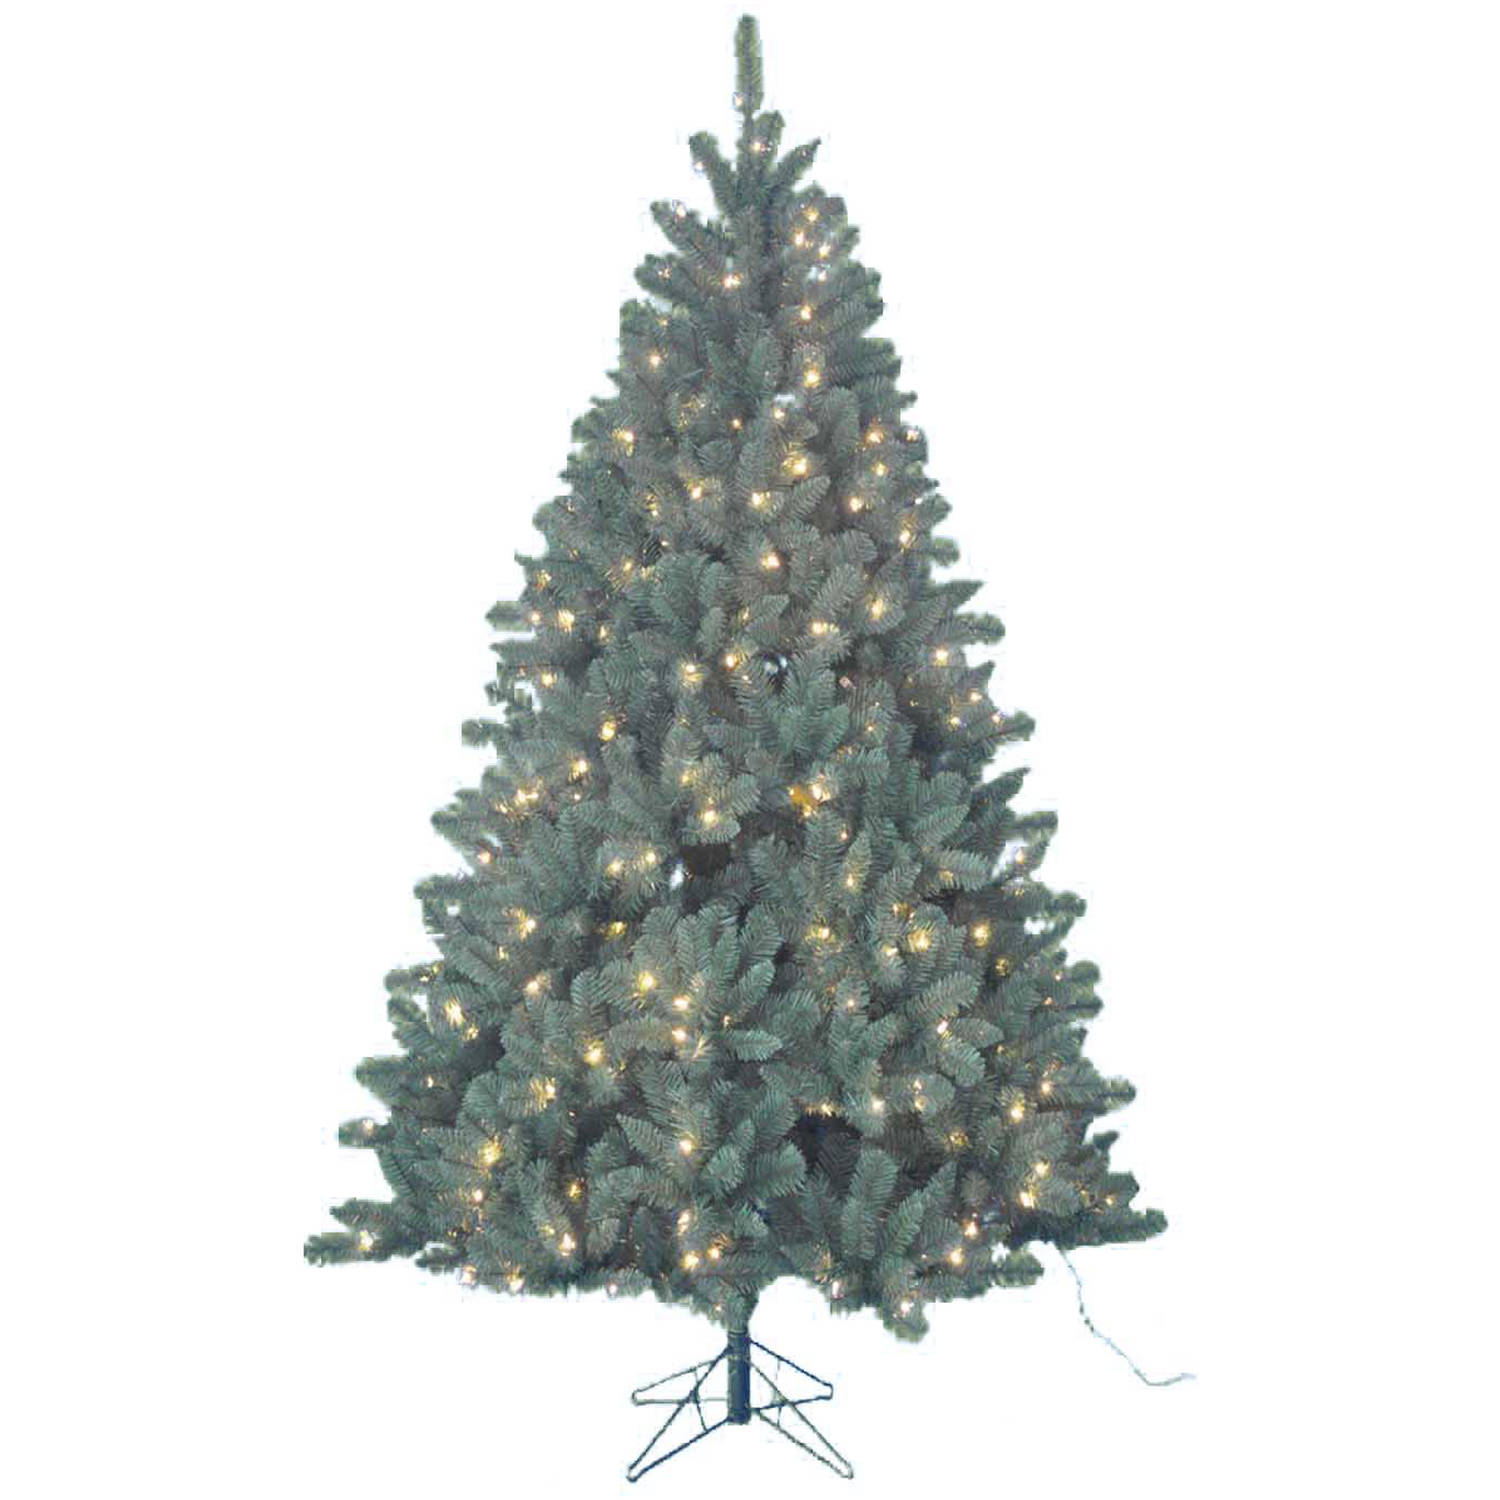 Kurt Adler Pre-Lit 7' Green Northwood Pine Artificial Christmas Tree with 400 Clear Lights